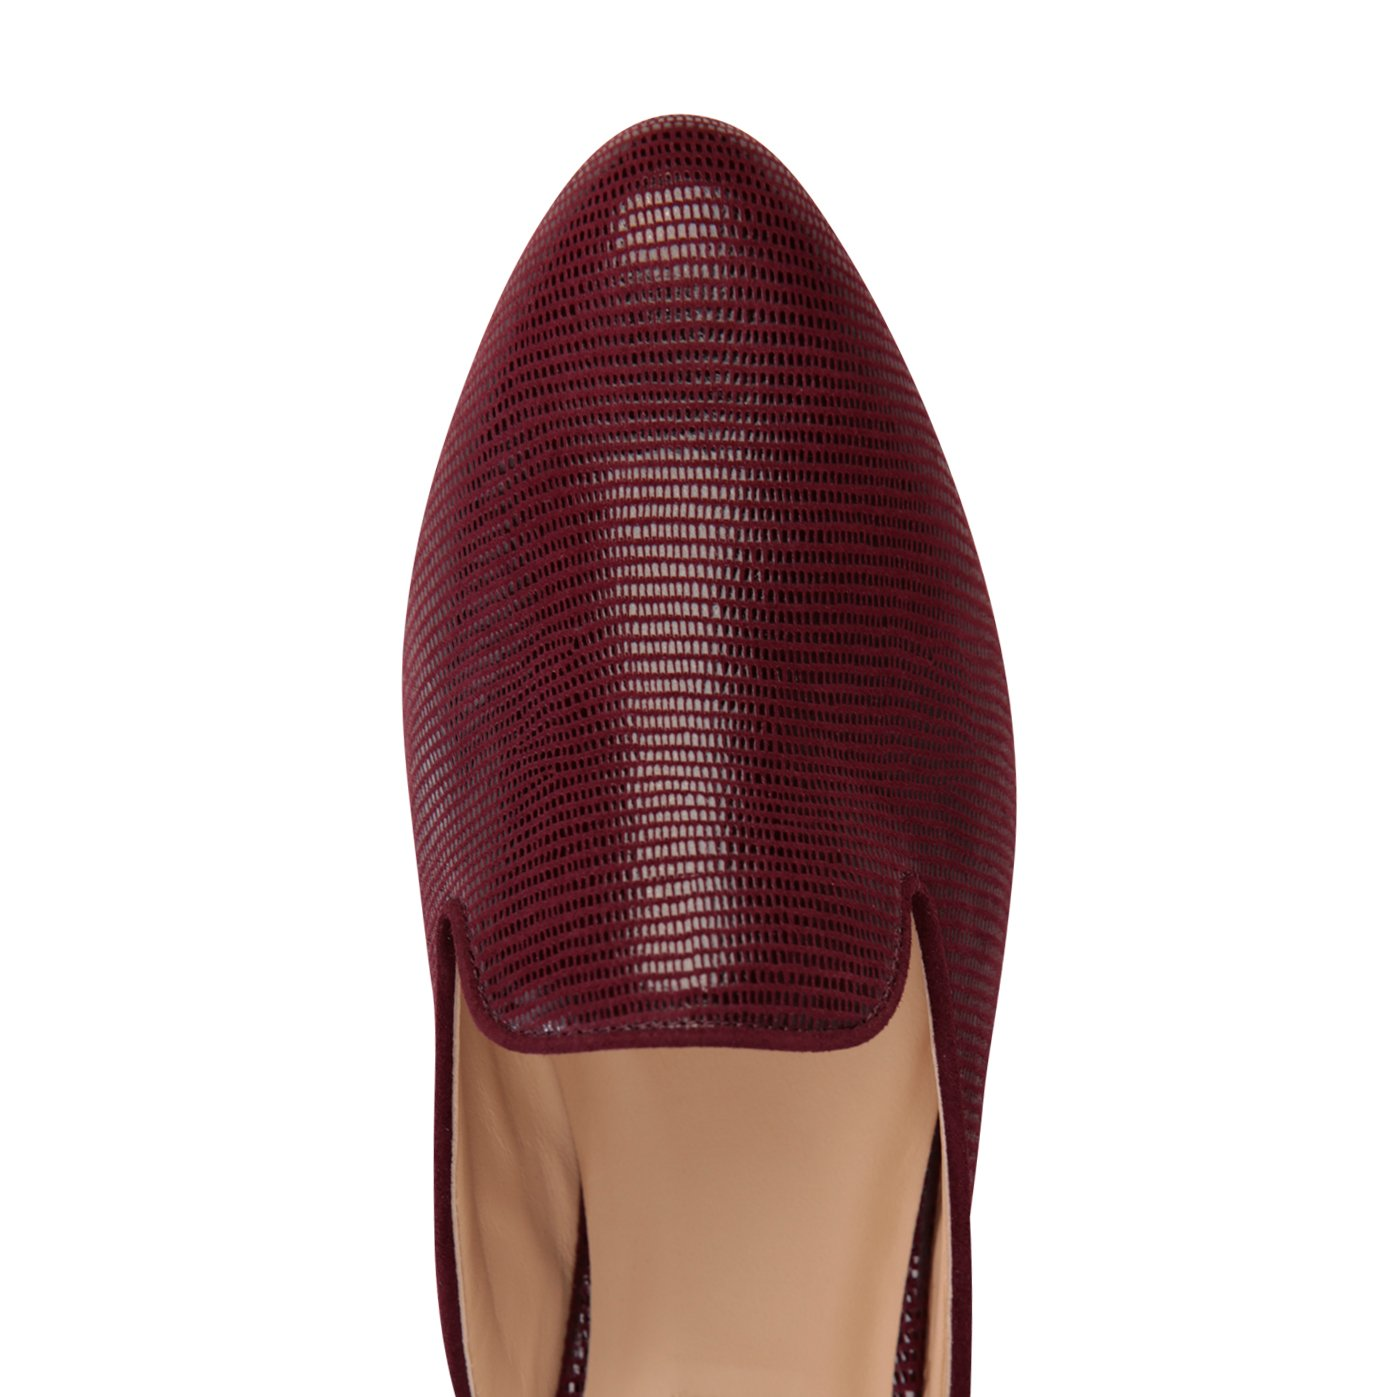 ISEO - Varanus Garnet, VIAJIYU - Women's Hand Made Sustainable Luxury Shoes. Made in Italy. Made to Order.